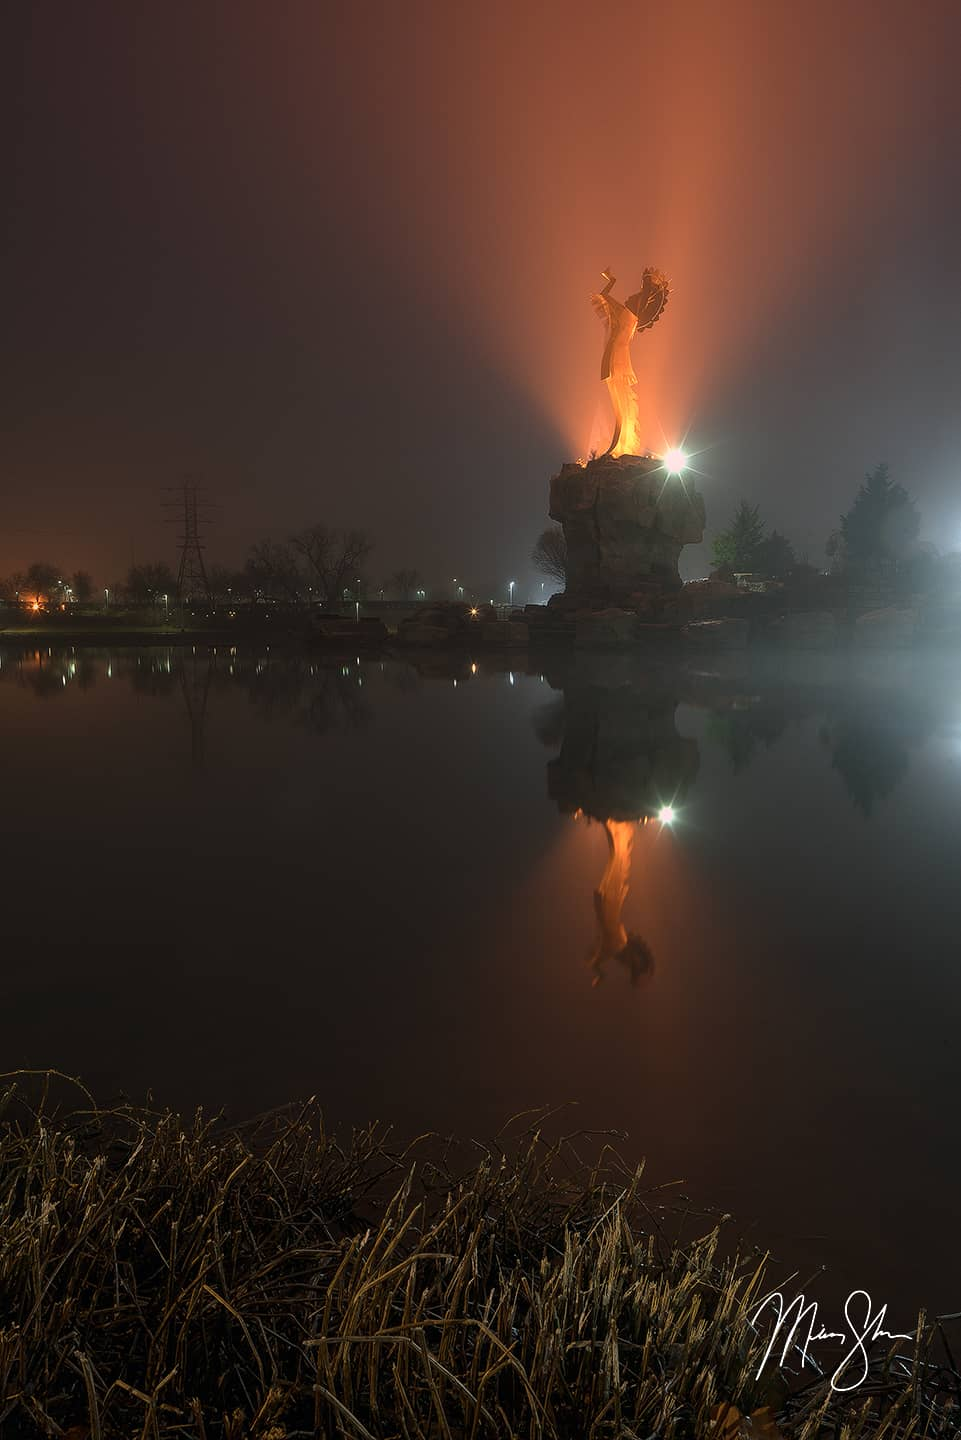 Open edition fine art print of Keeper of the Plains Foggy Reflection from Mickey Shannon Photography. Location: Wichita, Kansas